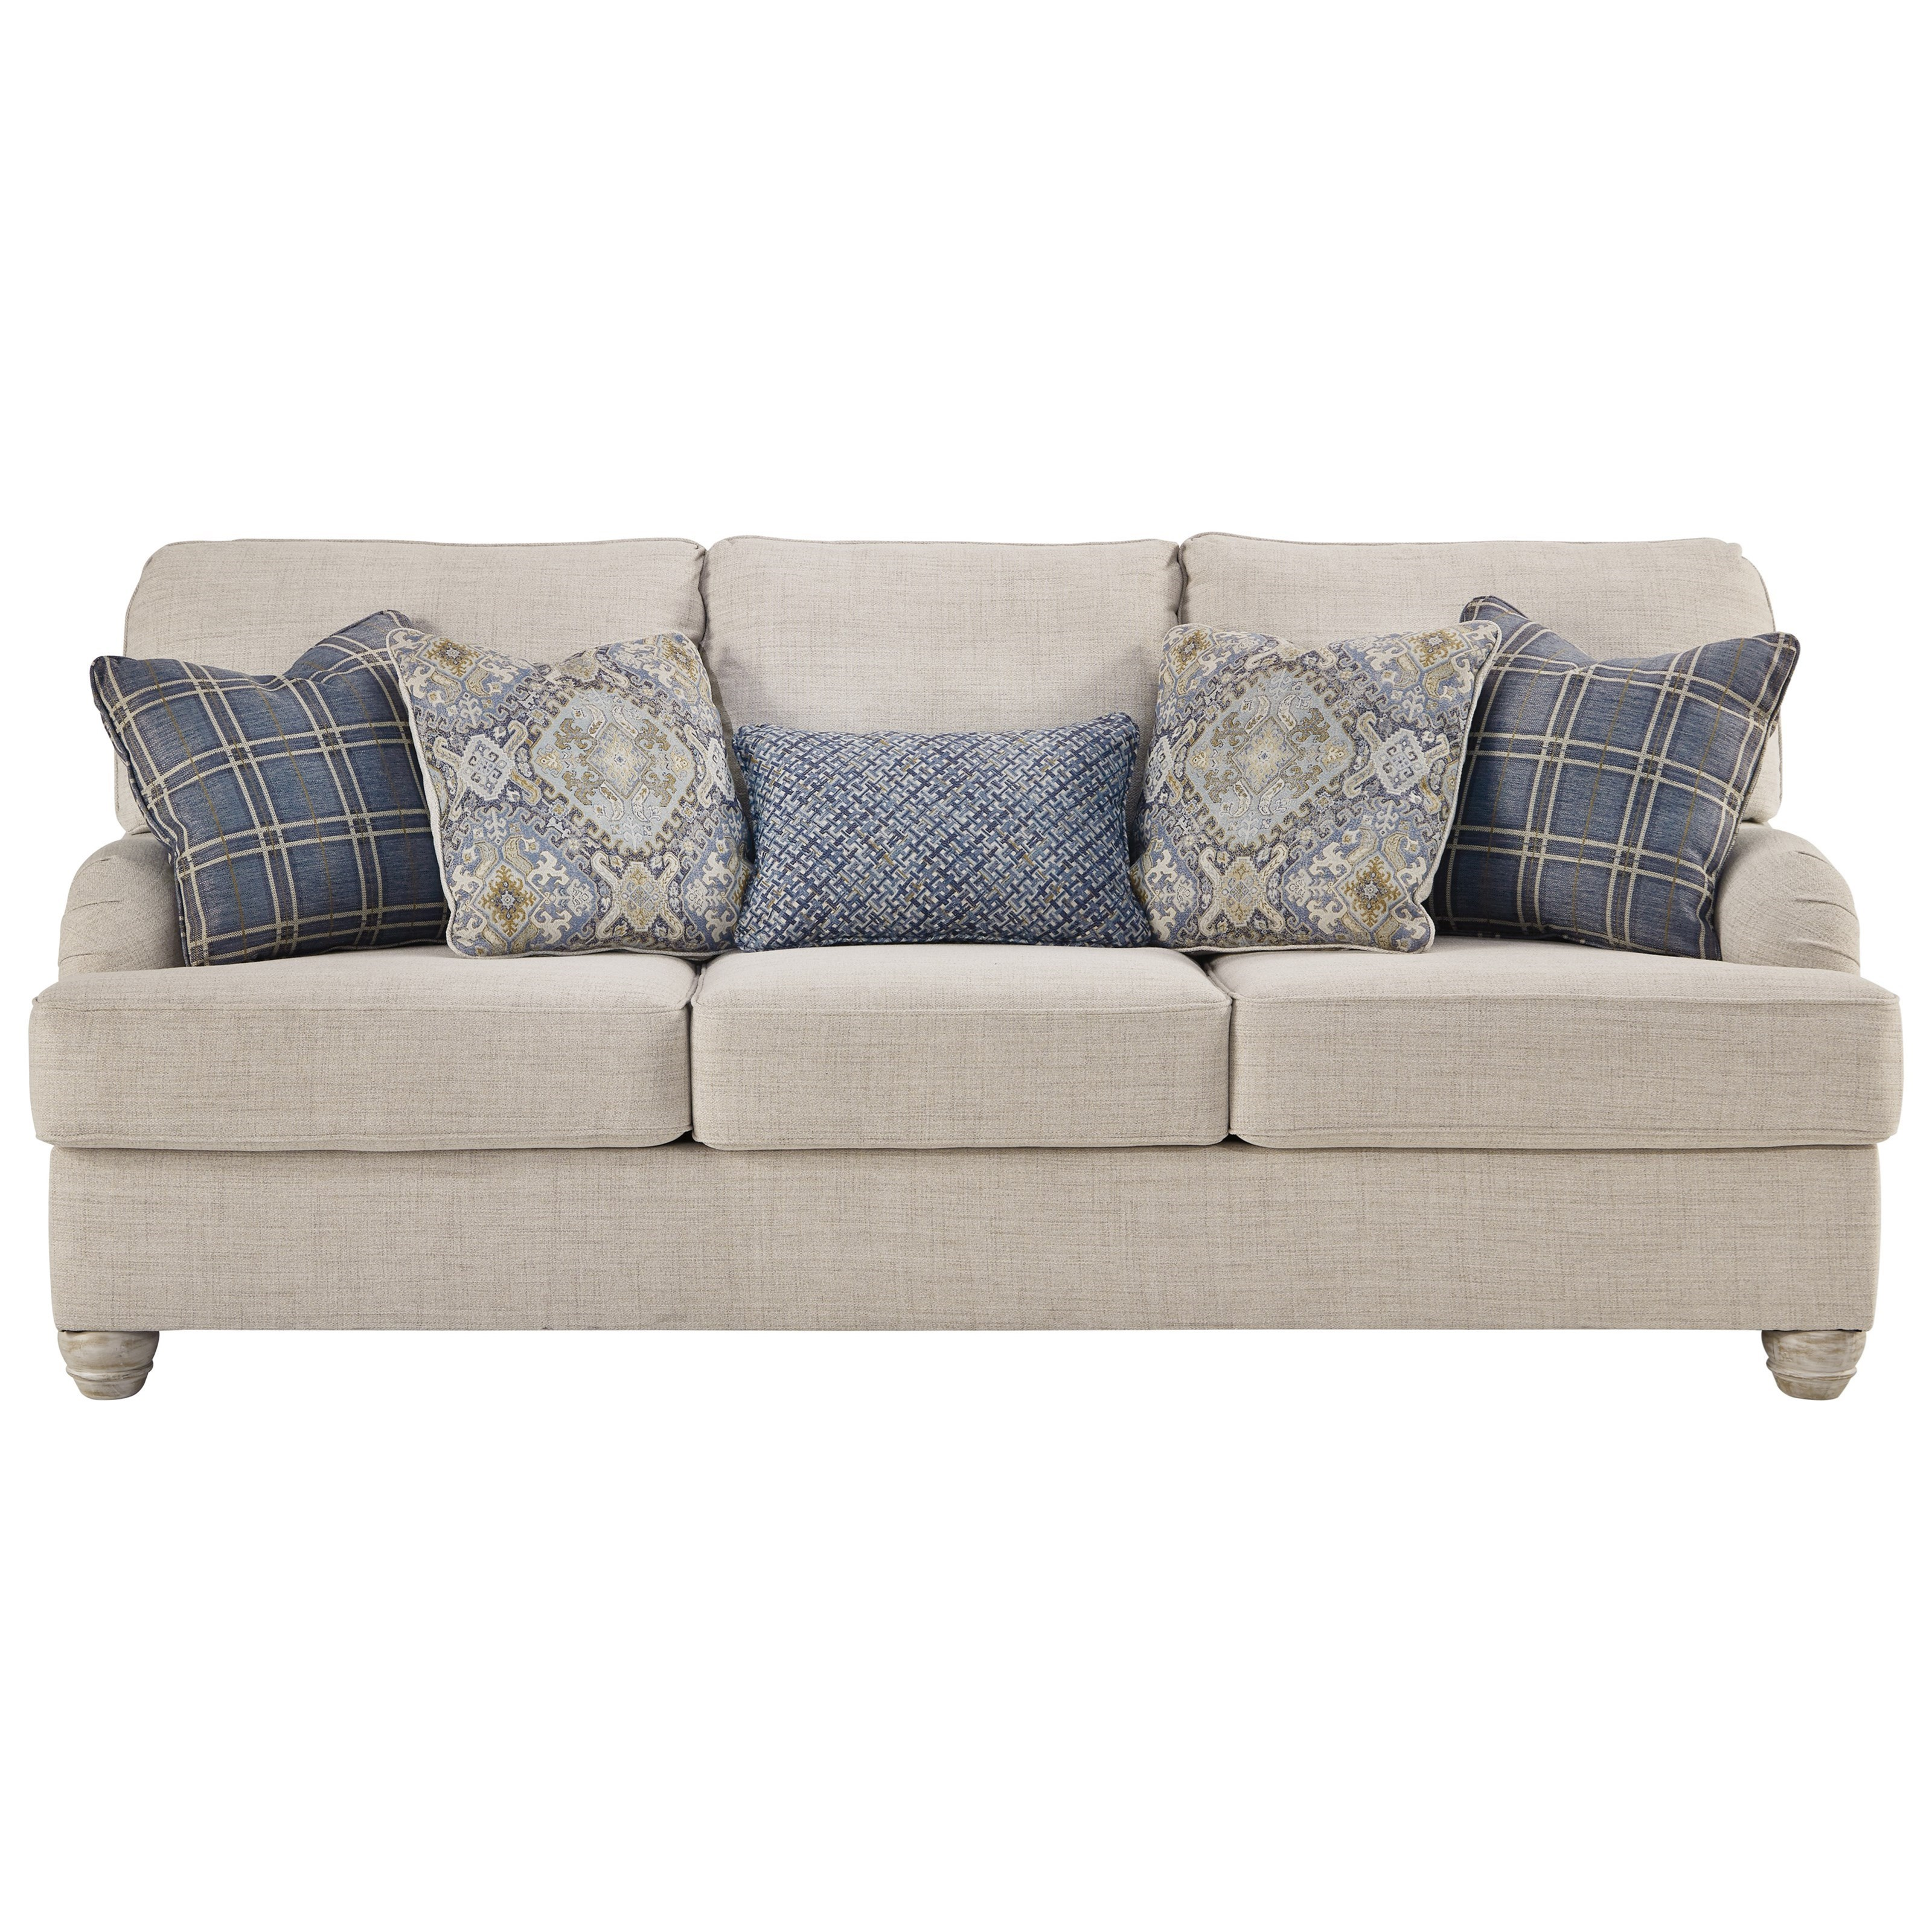 Traemore Queen Sofa Sleeper by Benchcraft at Suburban Furniture